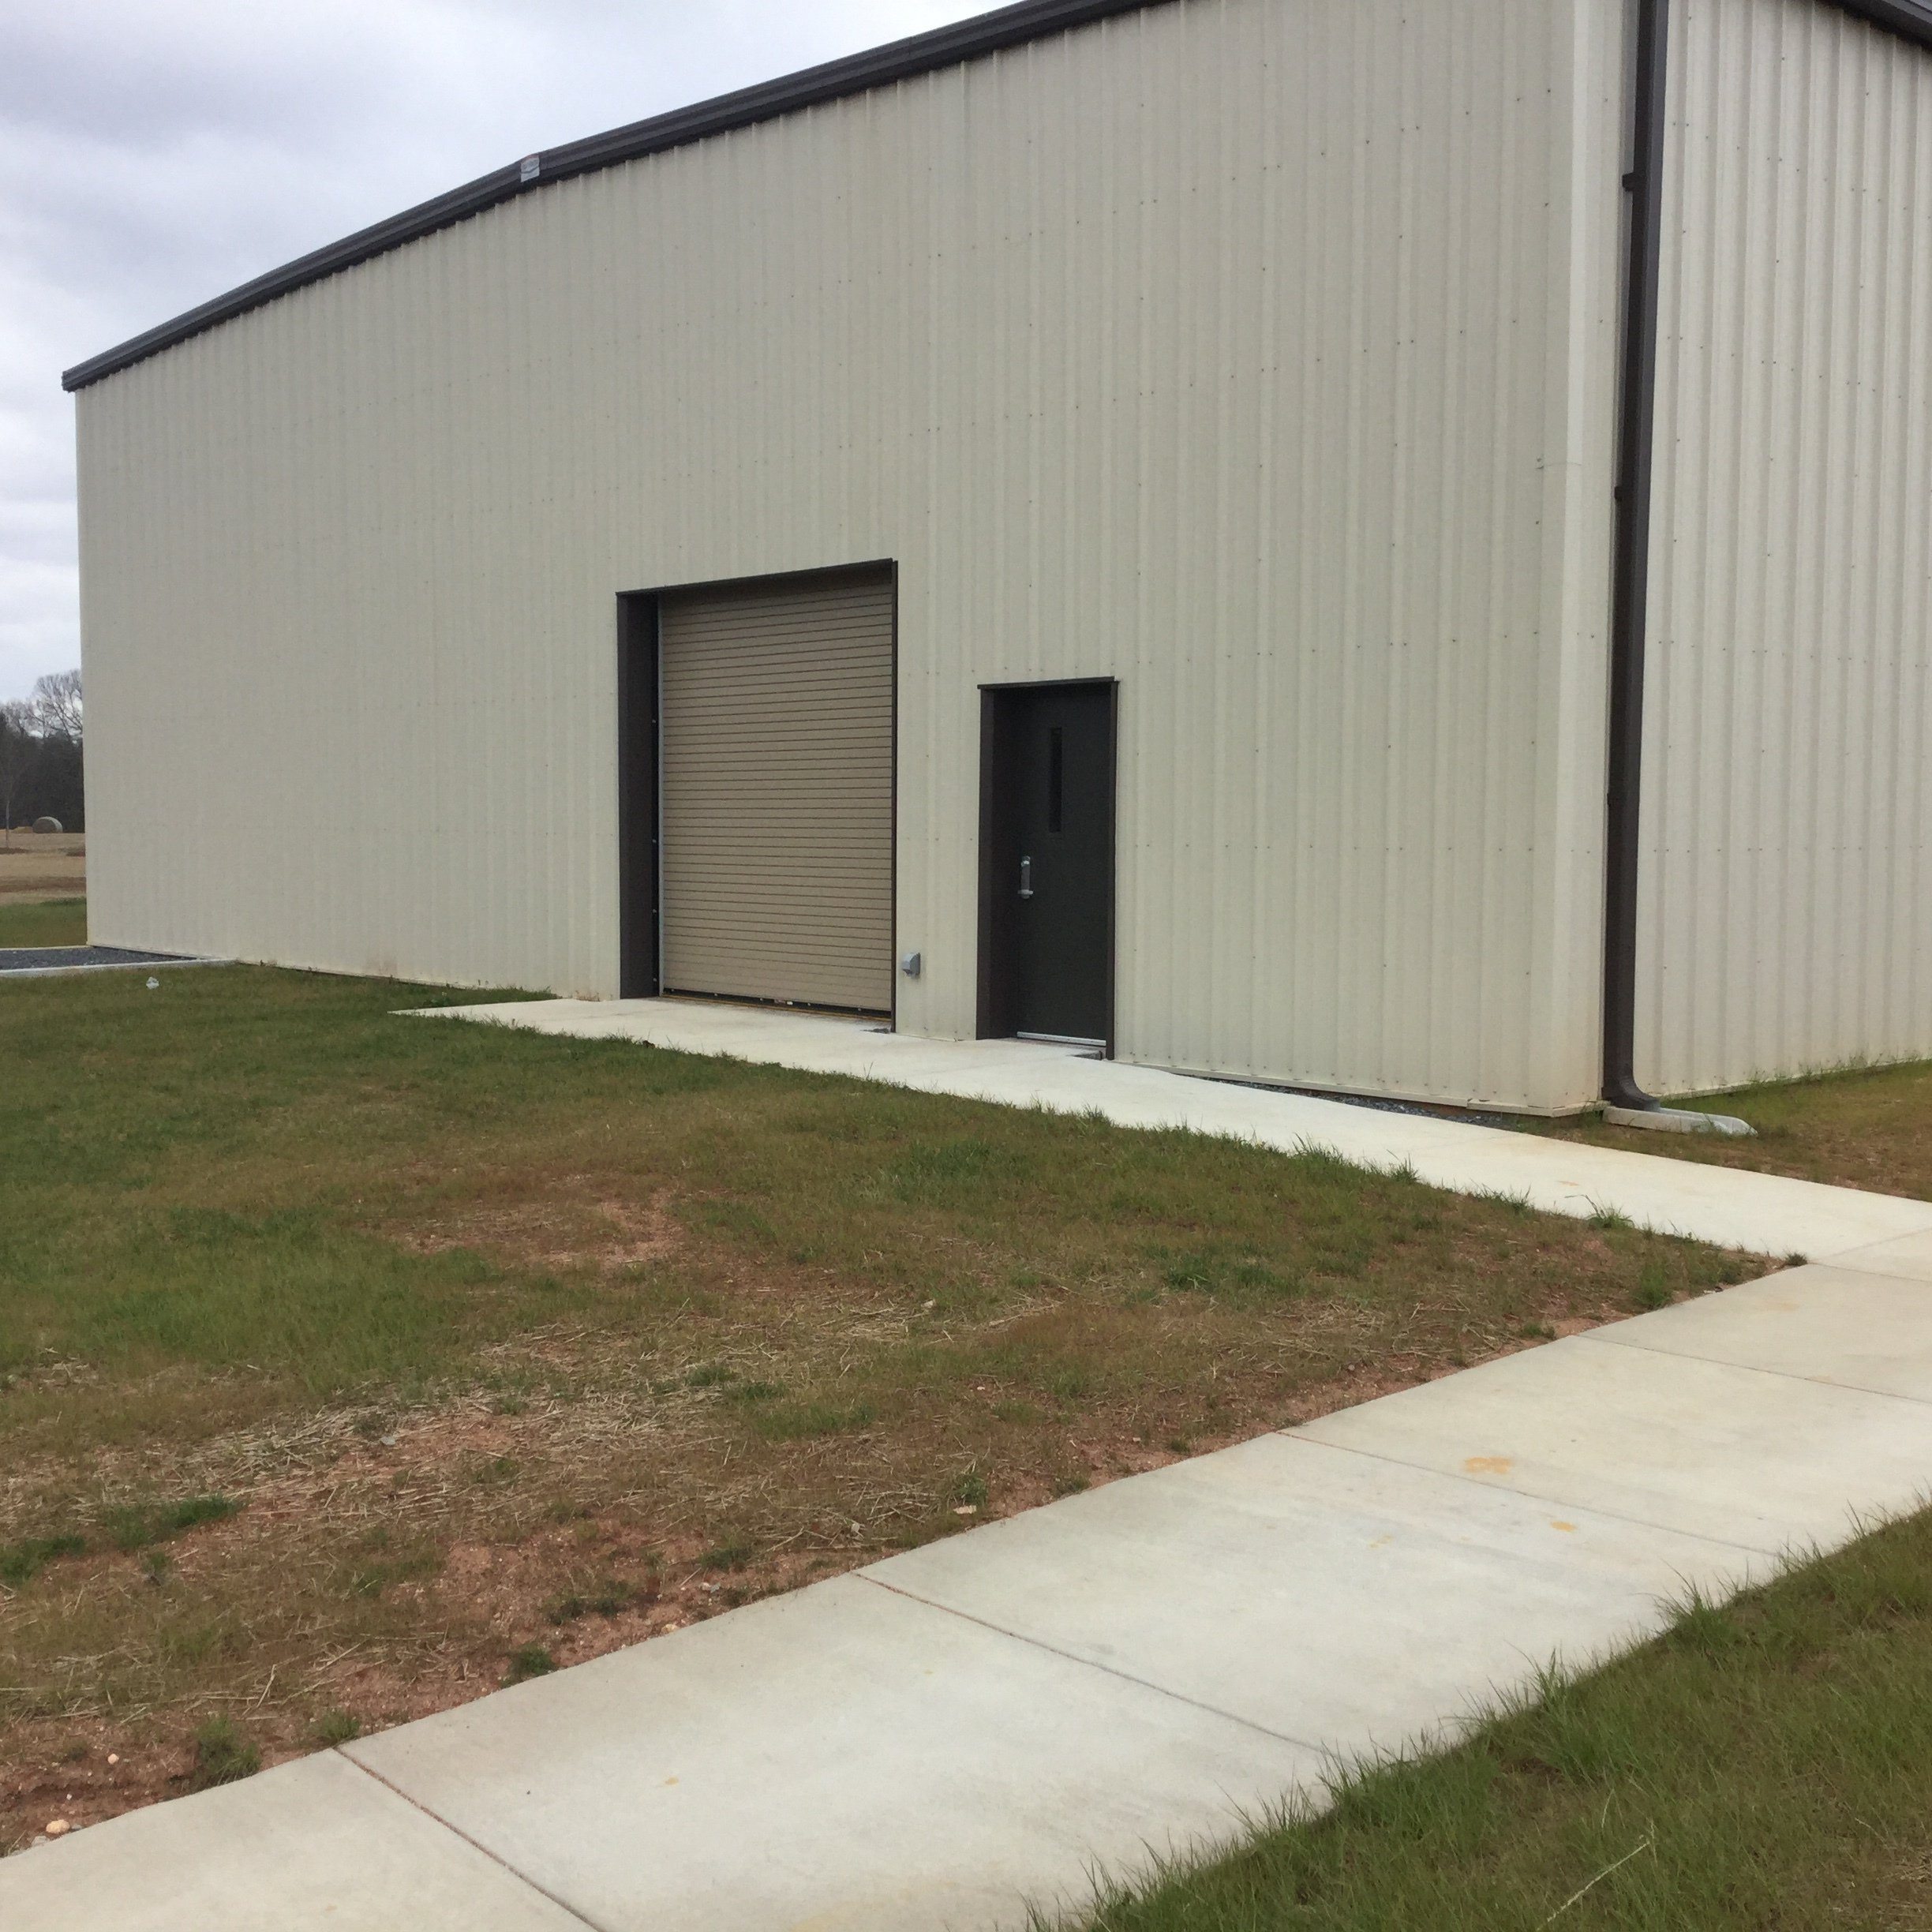 George M. Lanier Fire Protection Laboratory